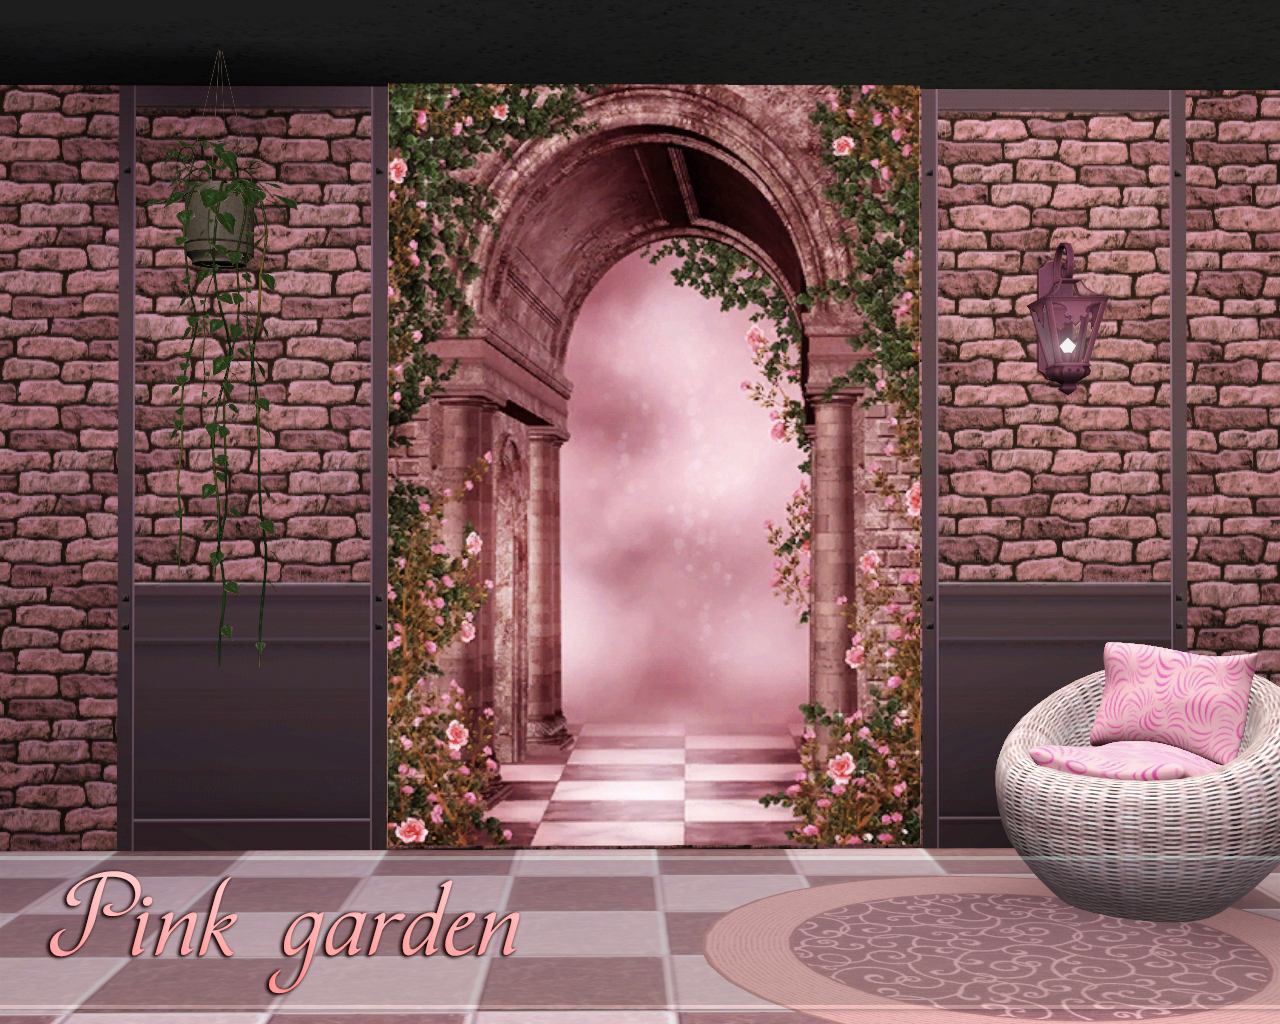 Pink garden backgrounds by Torri